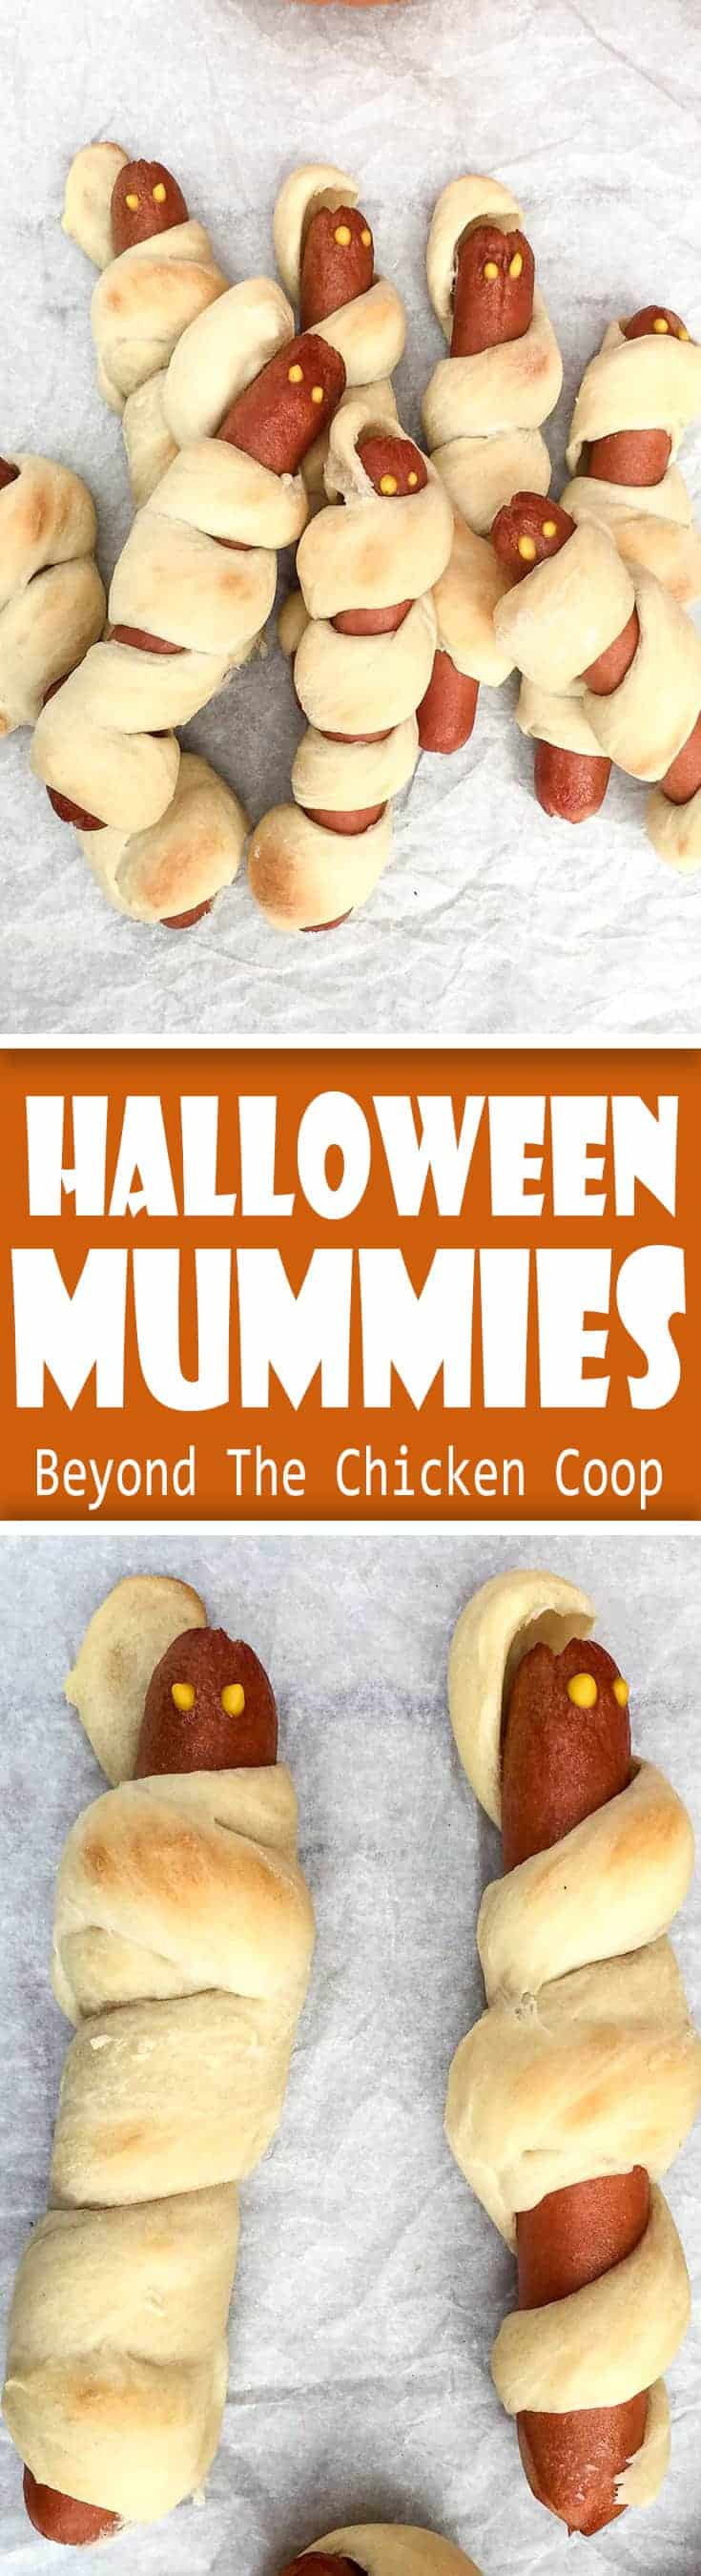 Halloween Hot Dog Mummies! Delightfully frightening treat made for kids of all ages! #mummydogs #Halloween #Mummyhotdogs #hotdogmummies #mummies